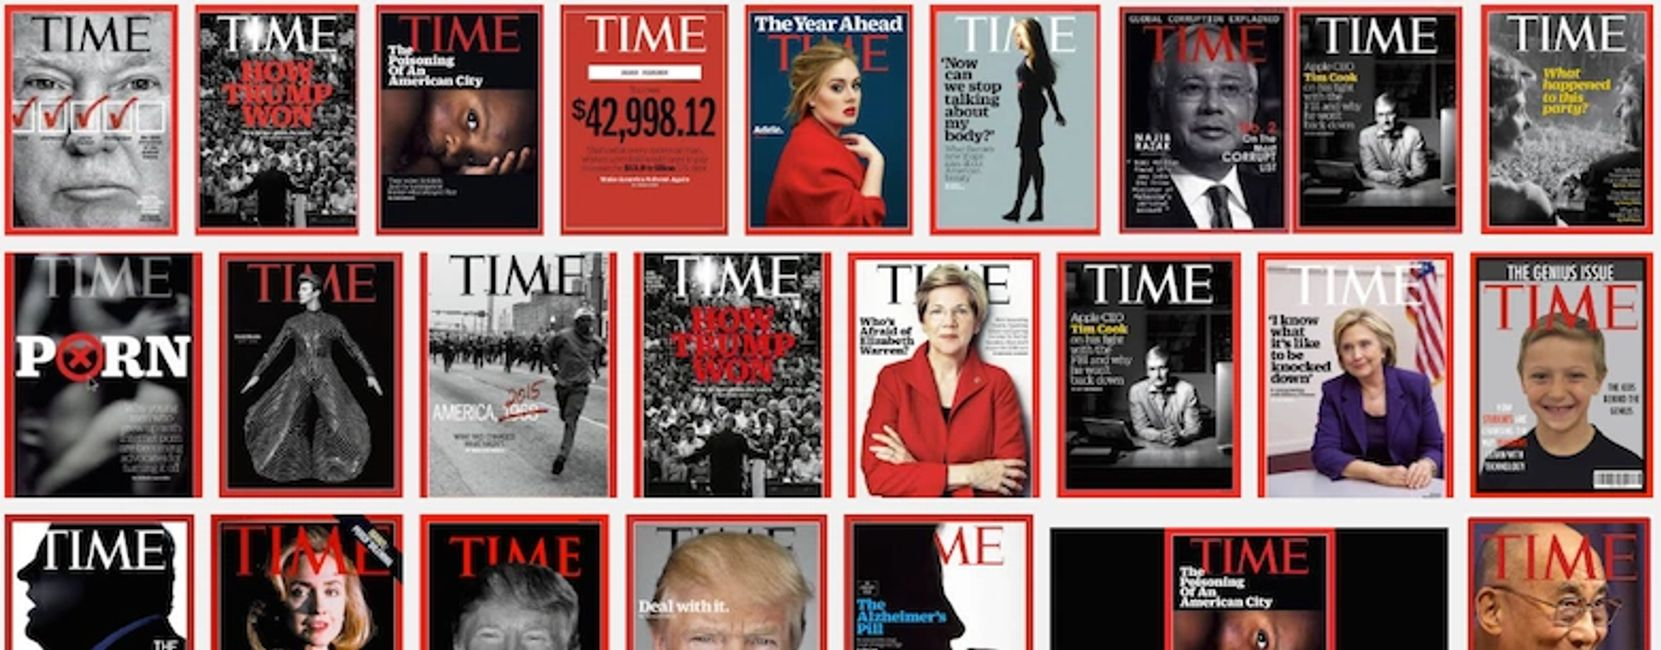 Image via Time Magazine